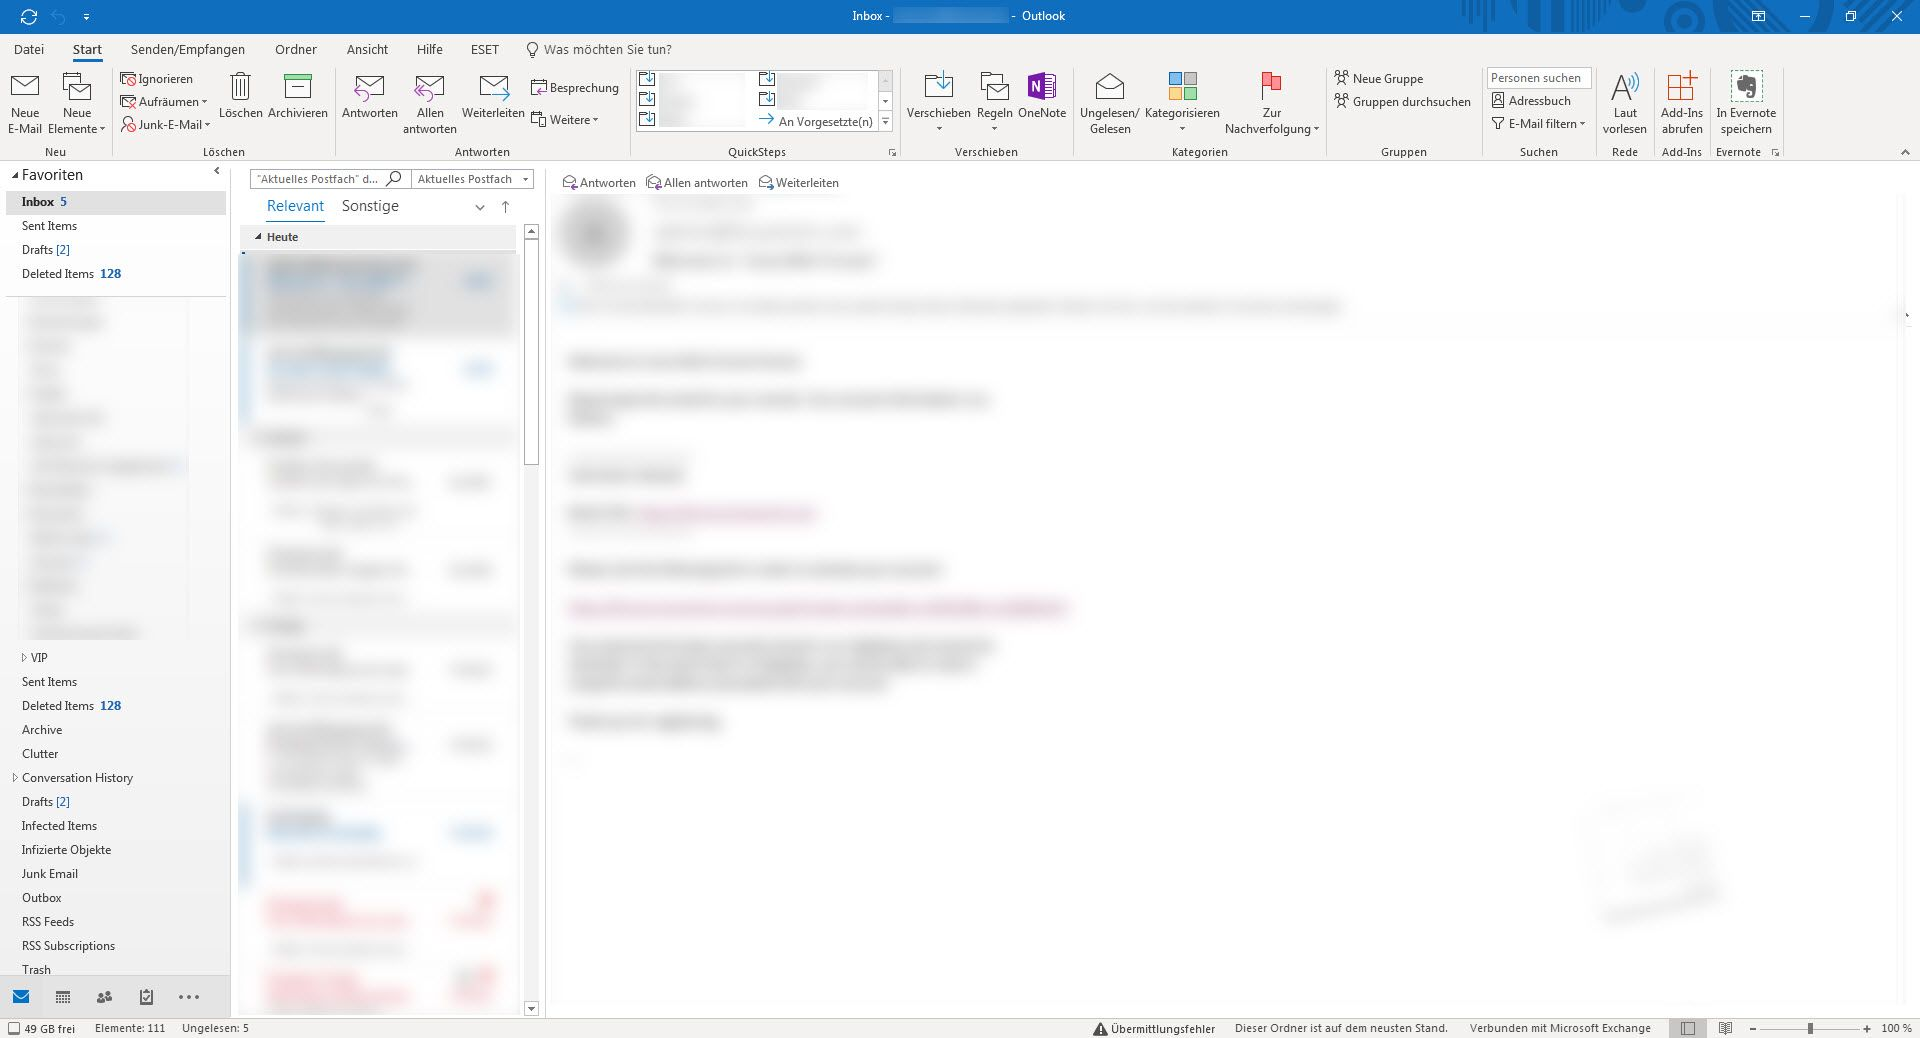 Outlook 365 Ribbon, etc - Microsoft Tech Community - 267706